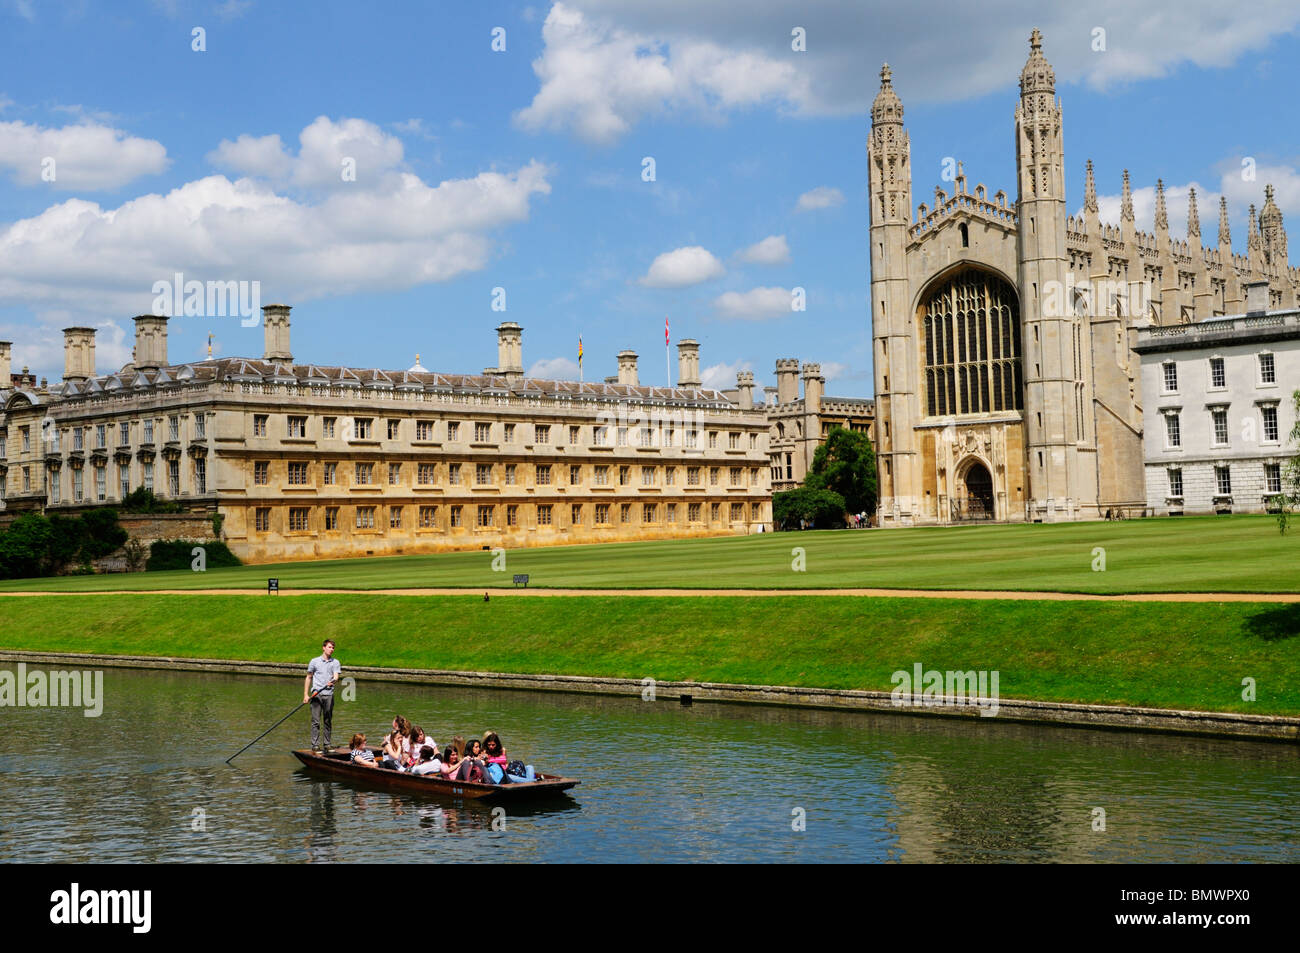 Punting on the River Cam at Kings College, Cambridge, England, UK - Stock Image